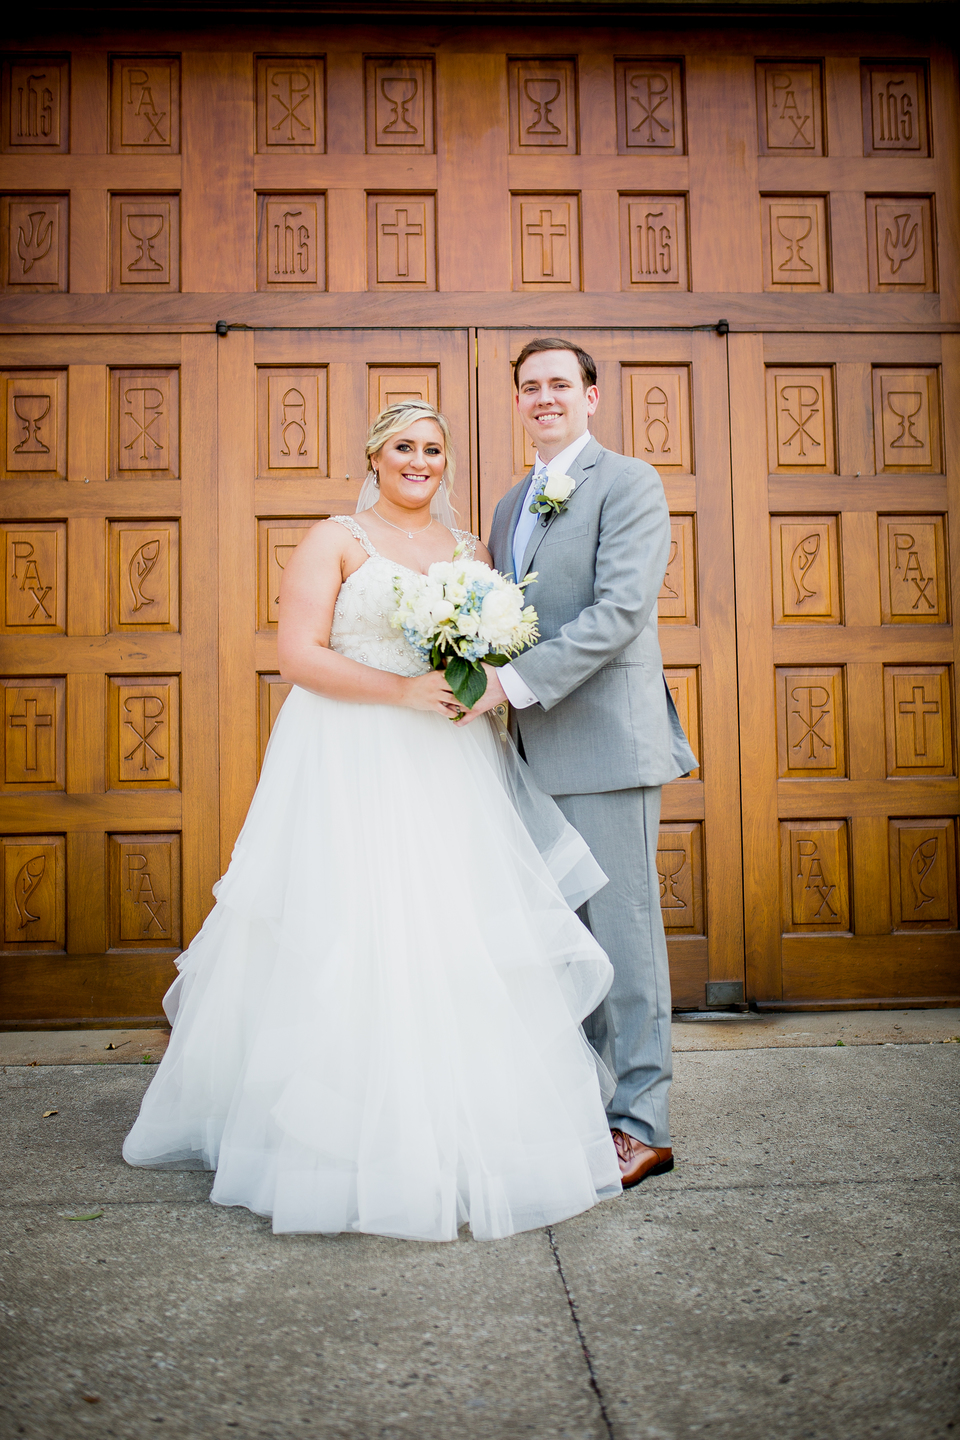 Nashville wedding photographer: Charming & Fun Hutton Hotel Nashville Wedding